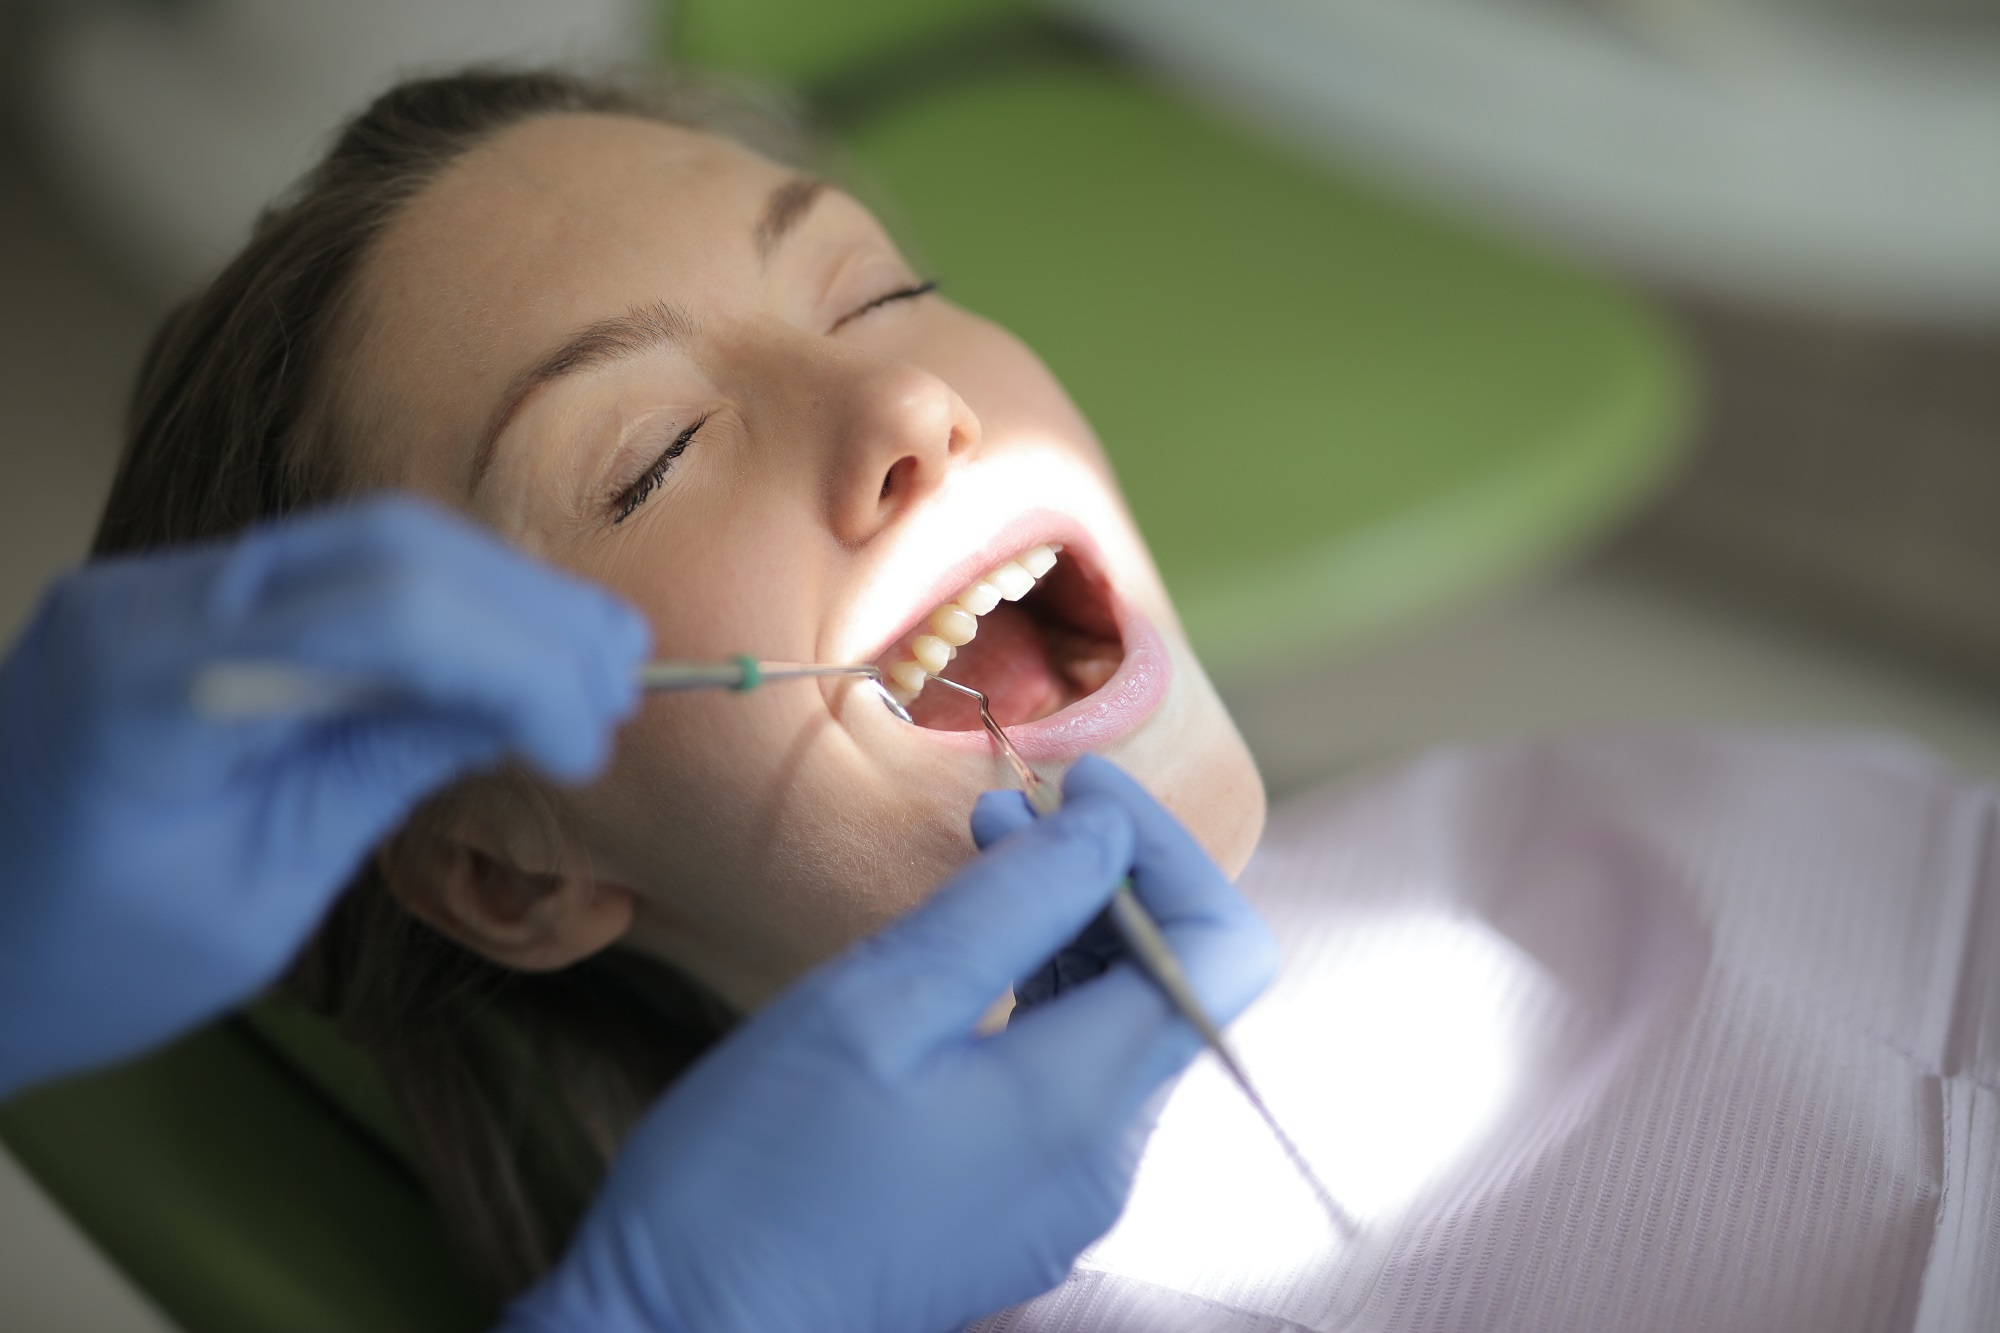 Teeth Problems and Oral Care tips by Dentist of London Ontario